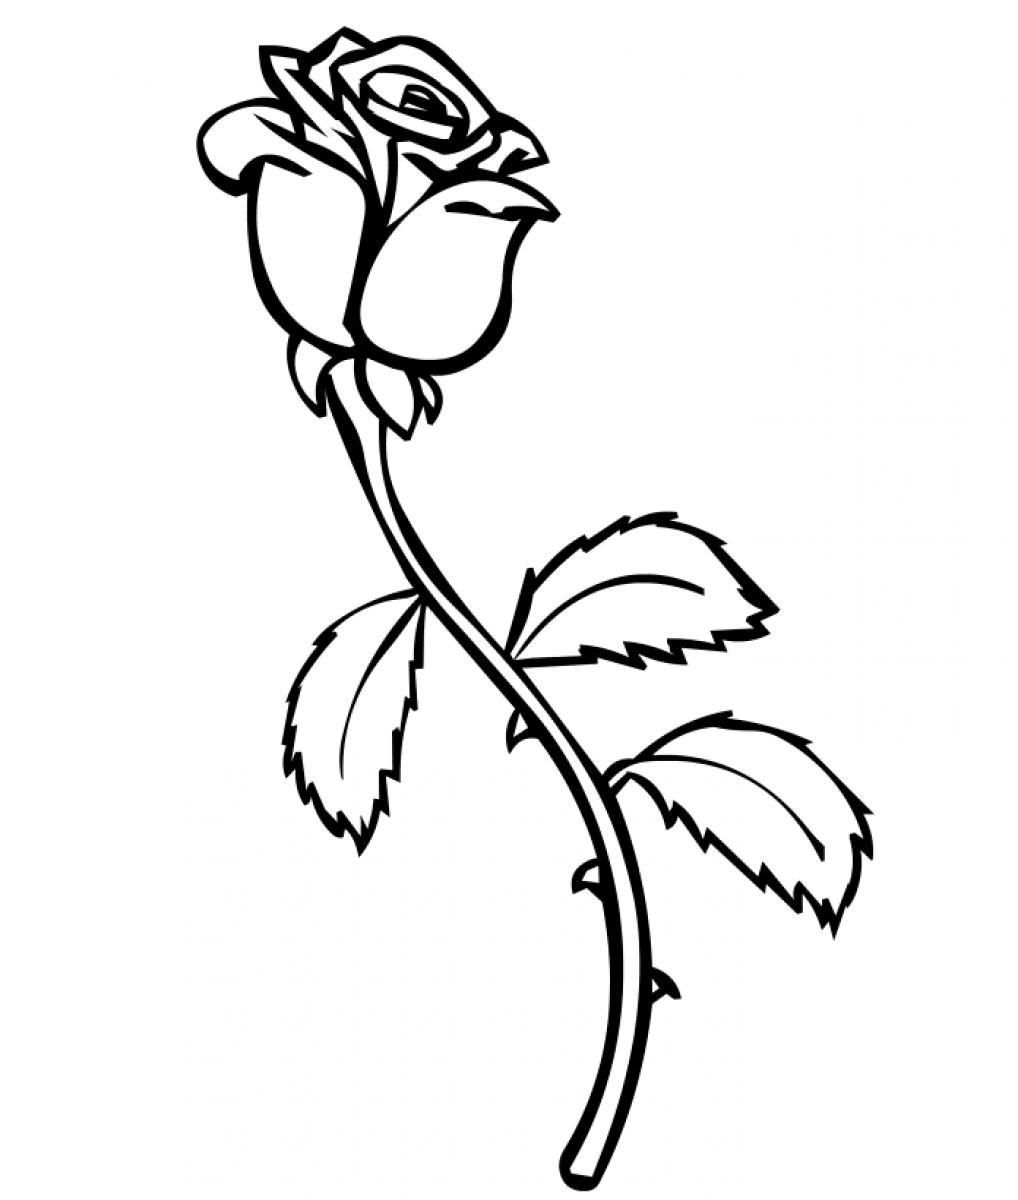 Printable Roses To Color Bing Images Flower Coloring Pages